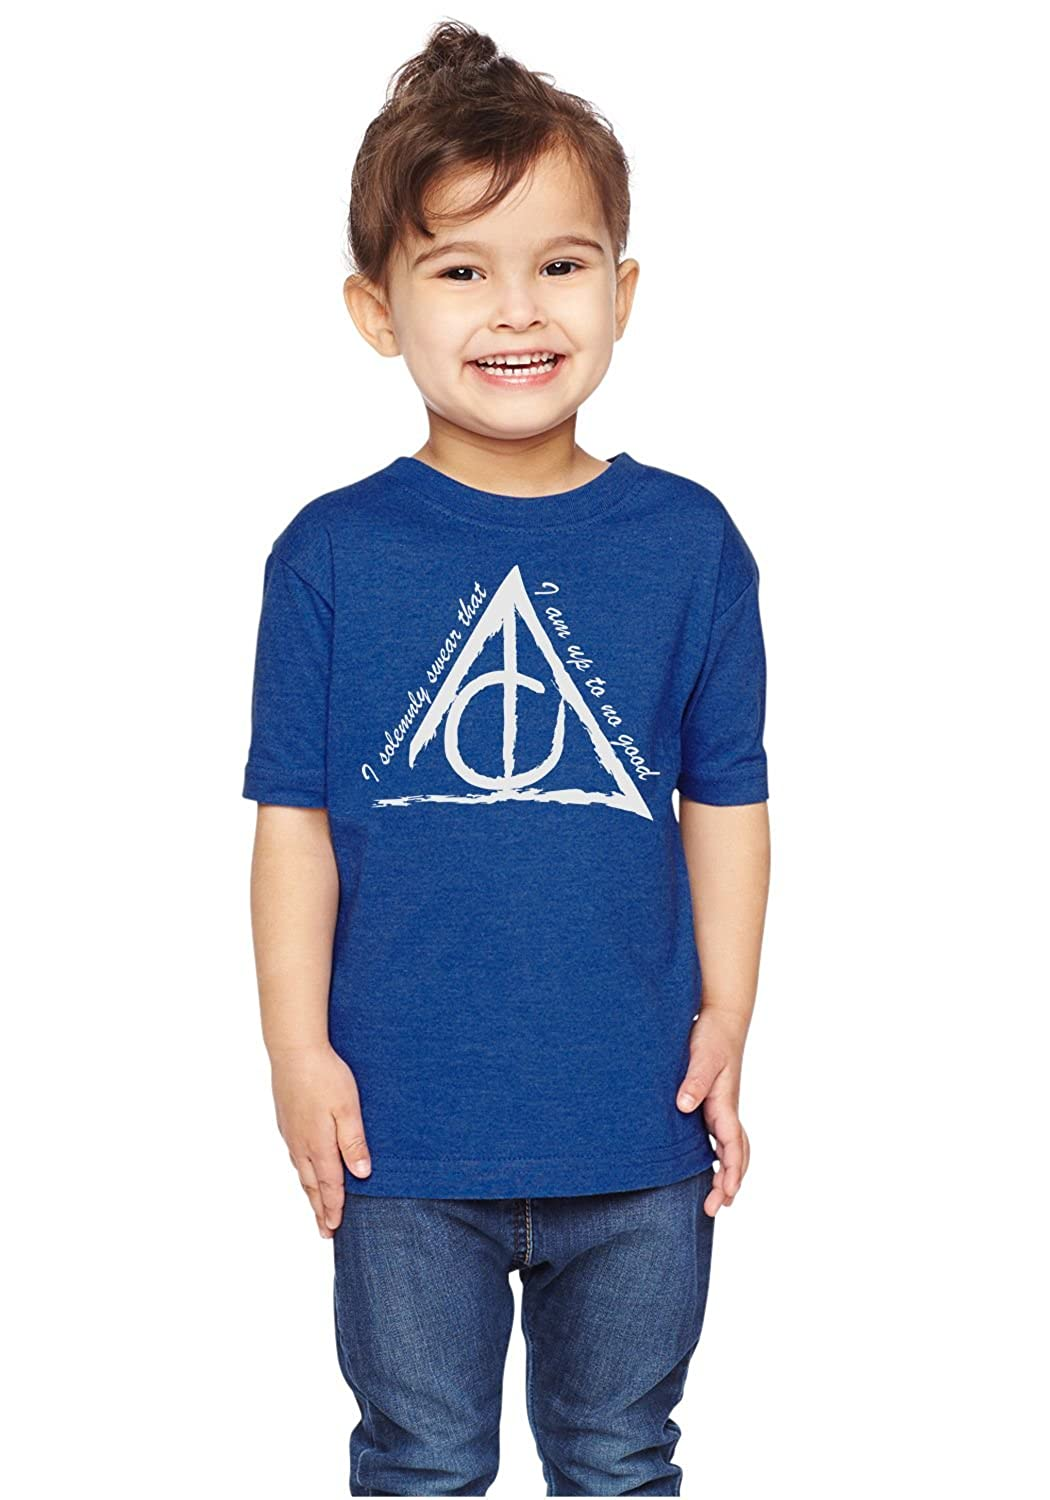 Brain Juice Tees I Solemnly Swear That I Am up to No Good Unisex Toddler Shirt